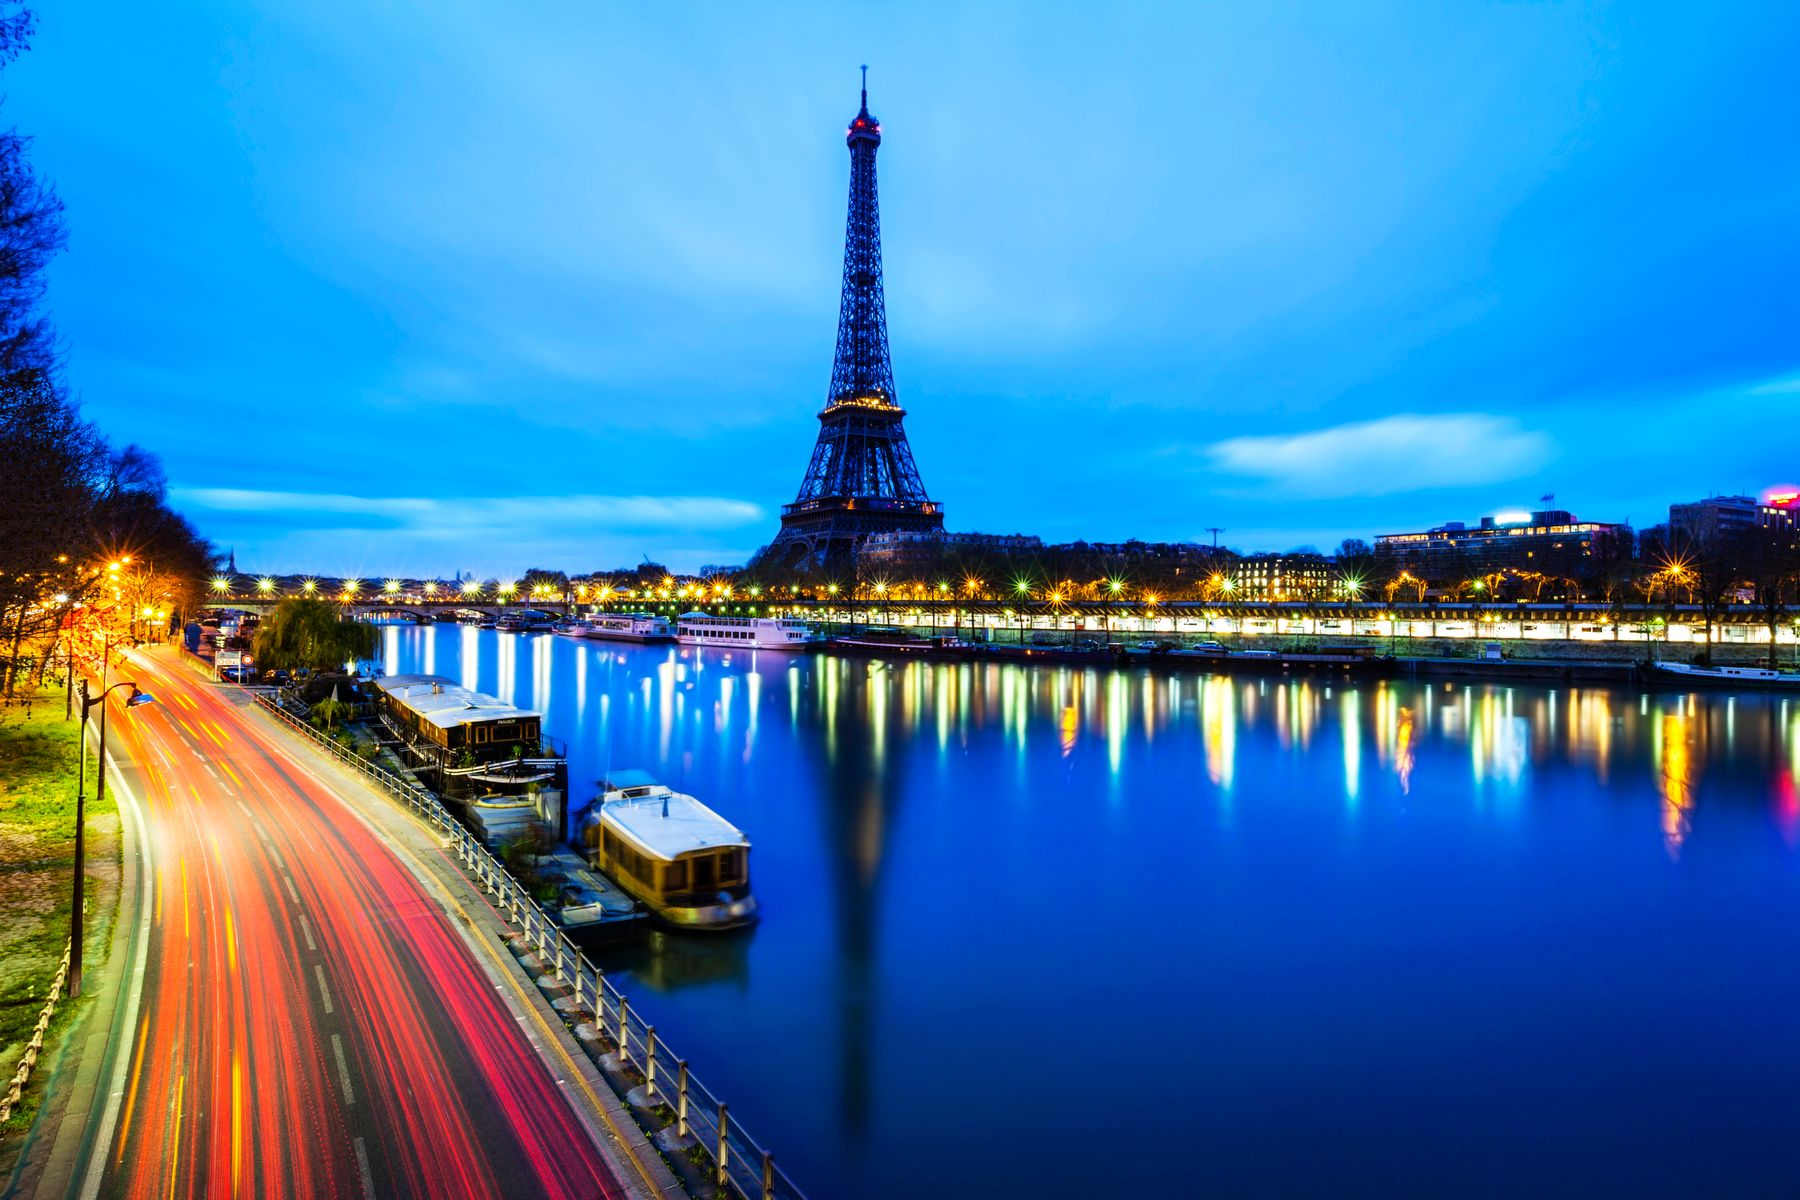 Long exposure shot of busy Parisian street and Eiffel Tower in blue hour